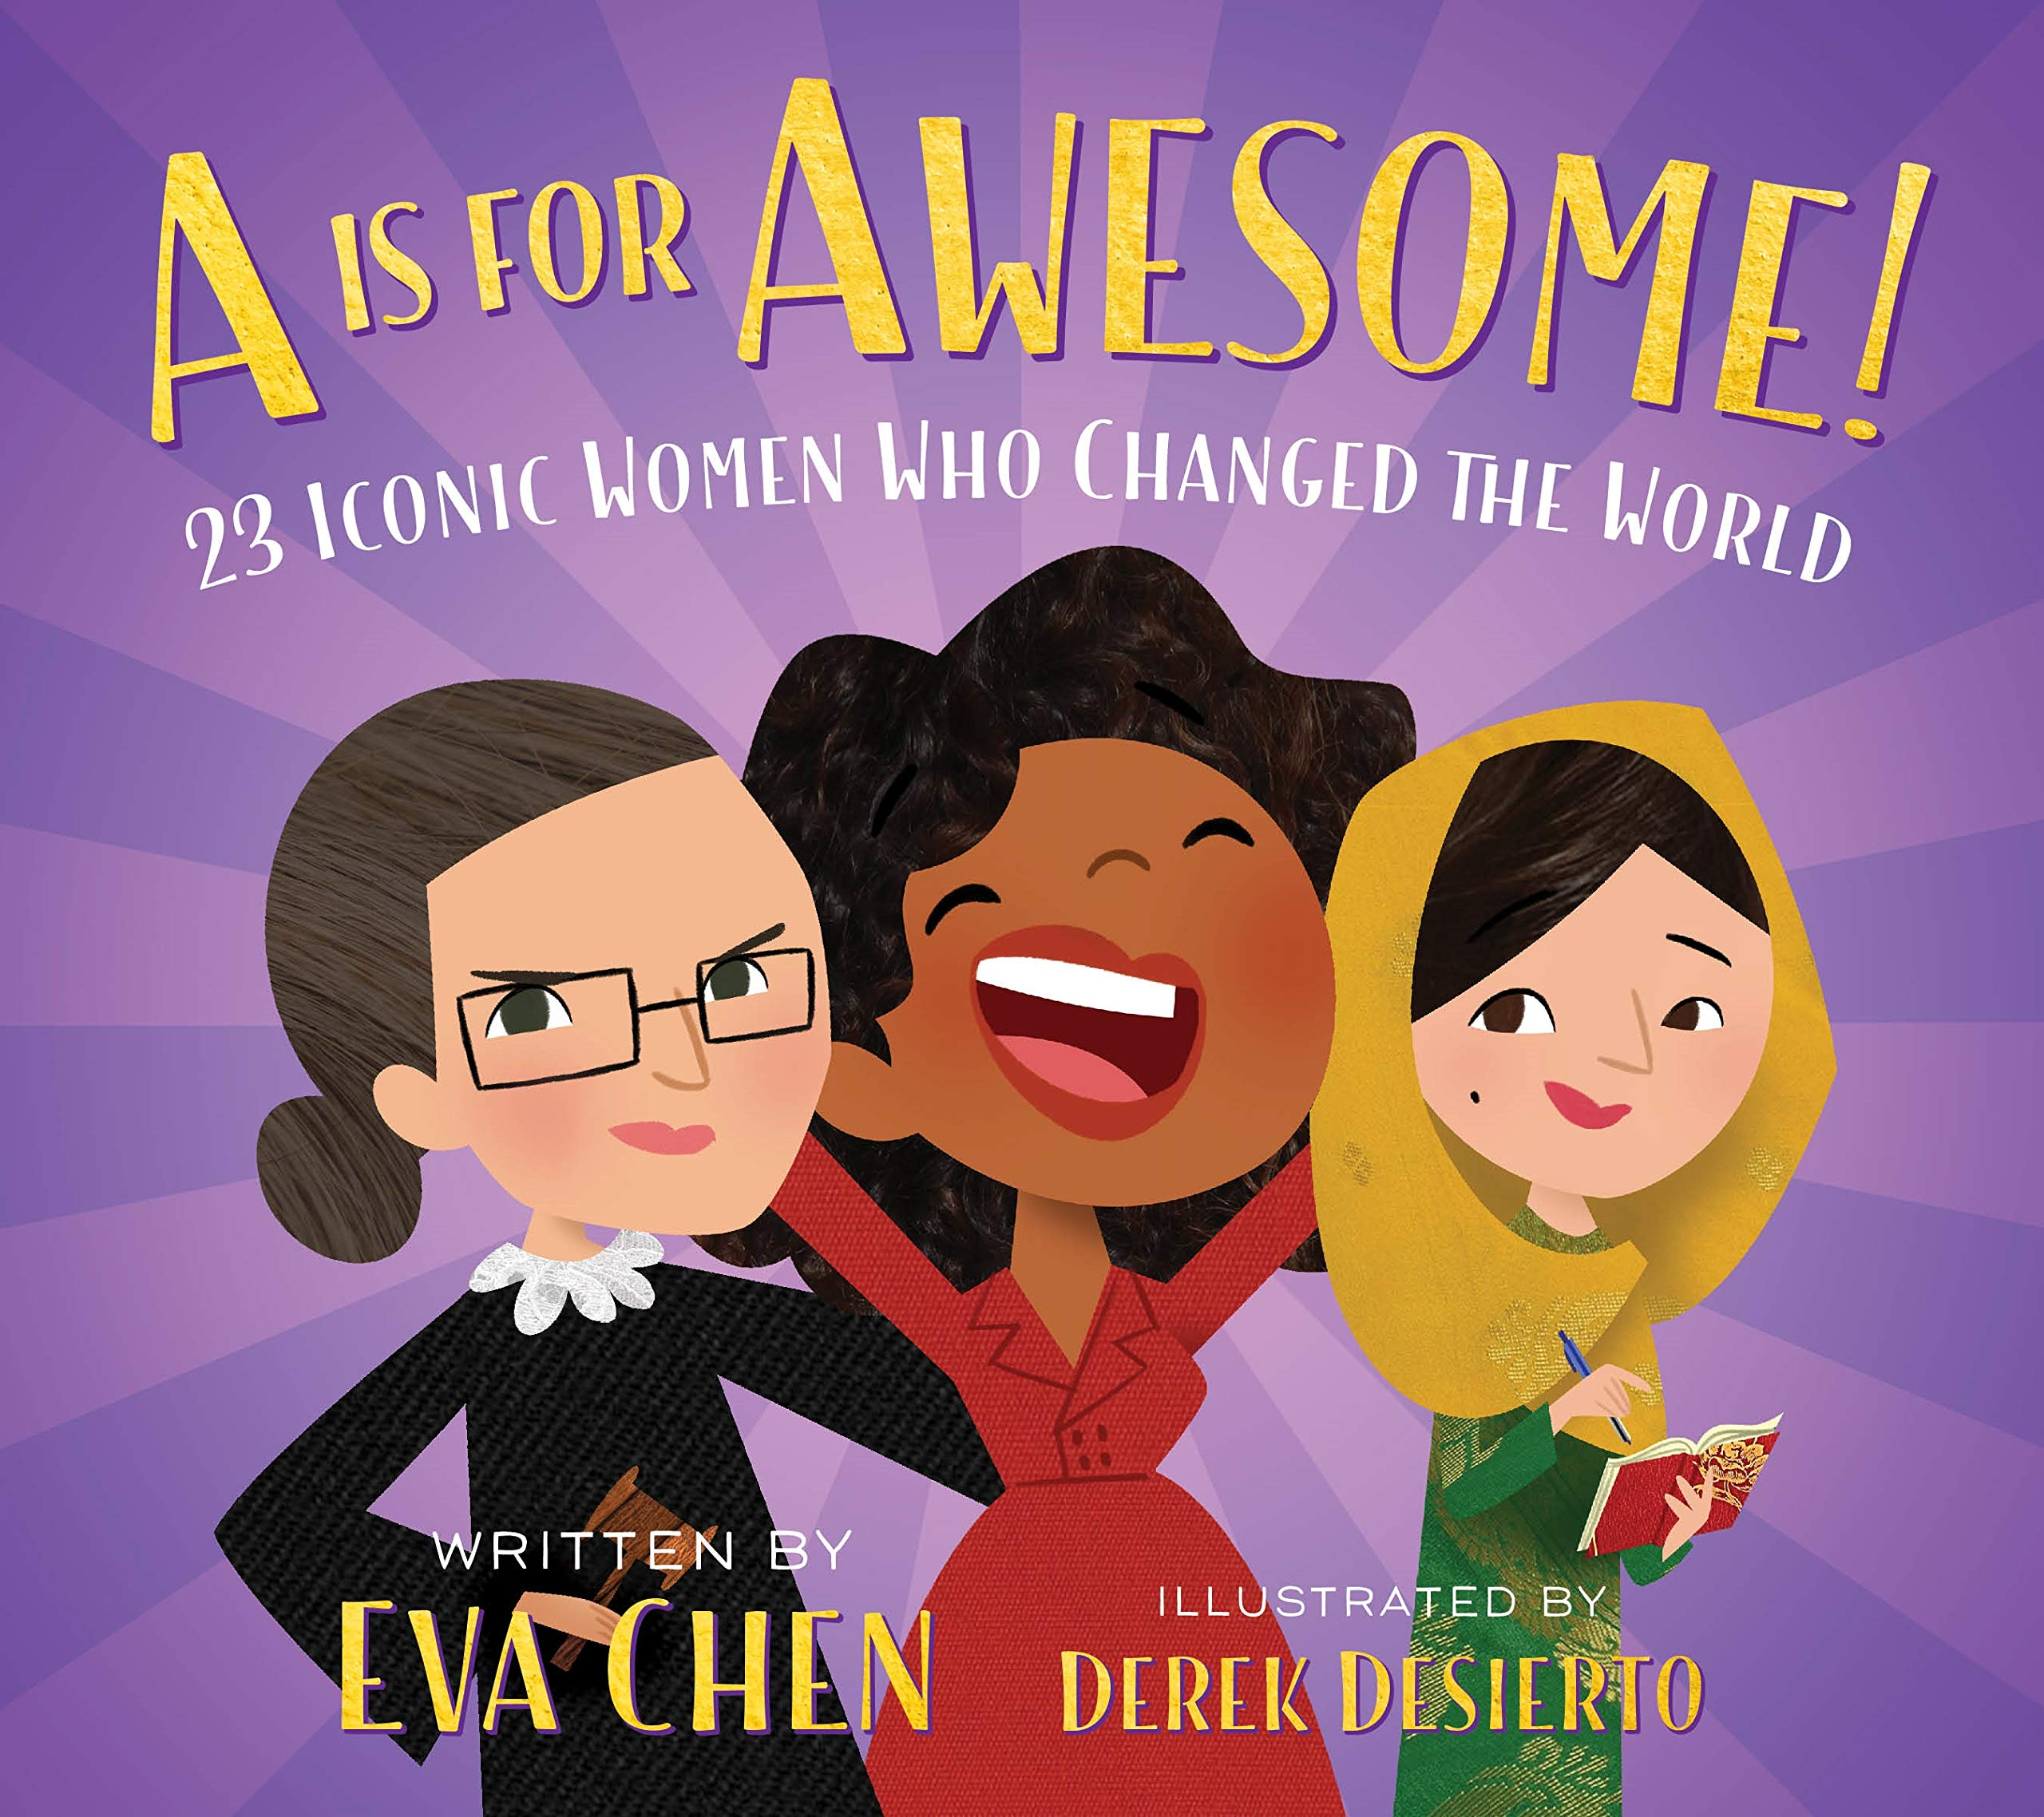 A is for Awesome!: 23 Iconic Women Who Changed the World: Amazon.es: Eva Chen, Derek Desierto: Libros en idiomas extranjeros